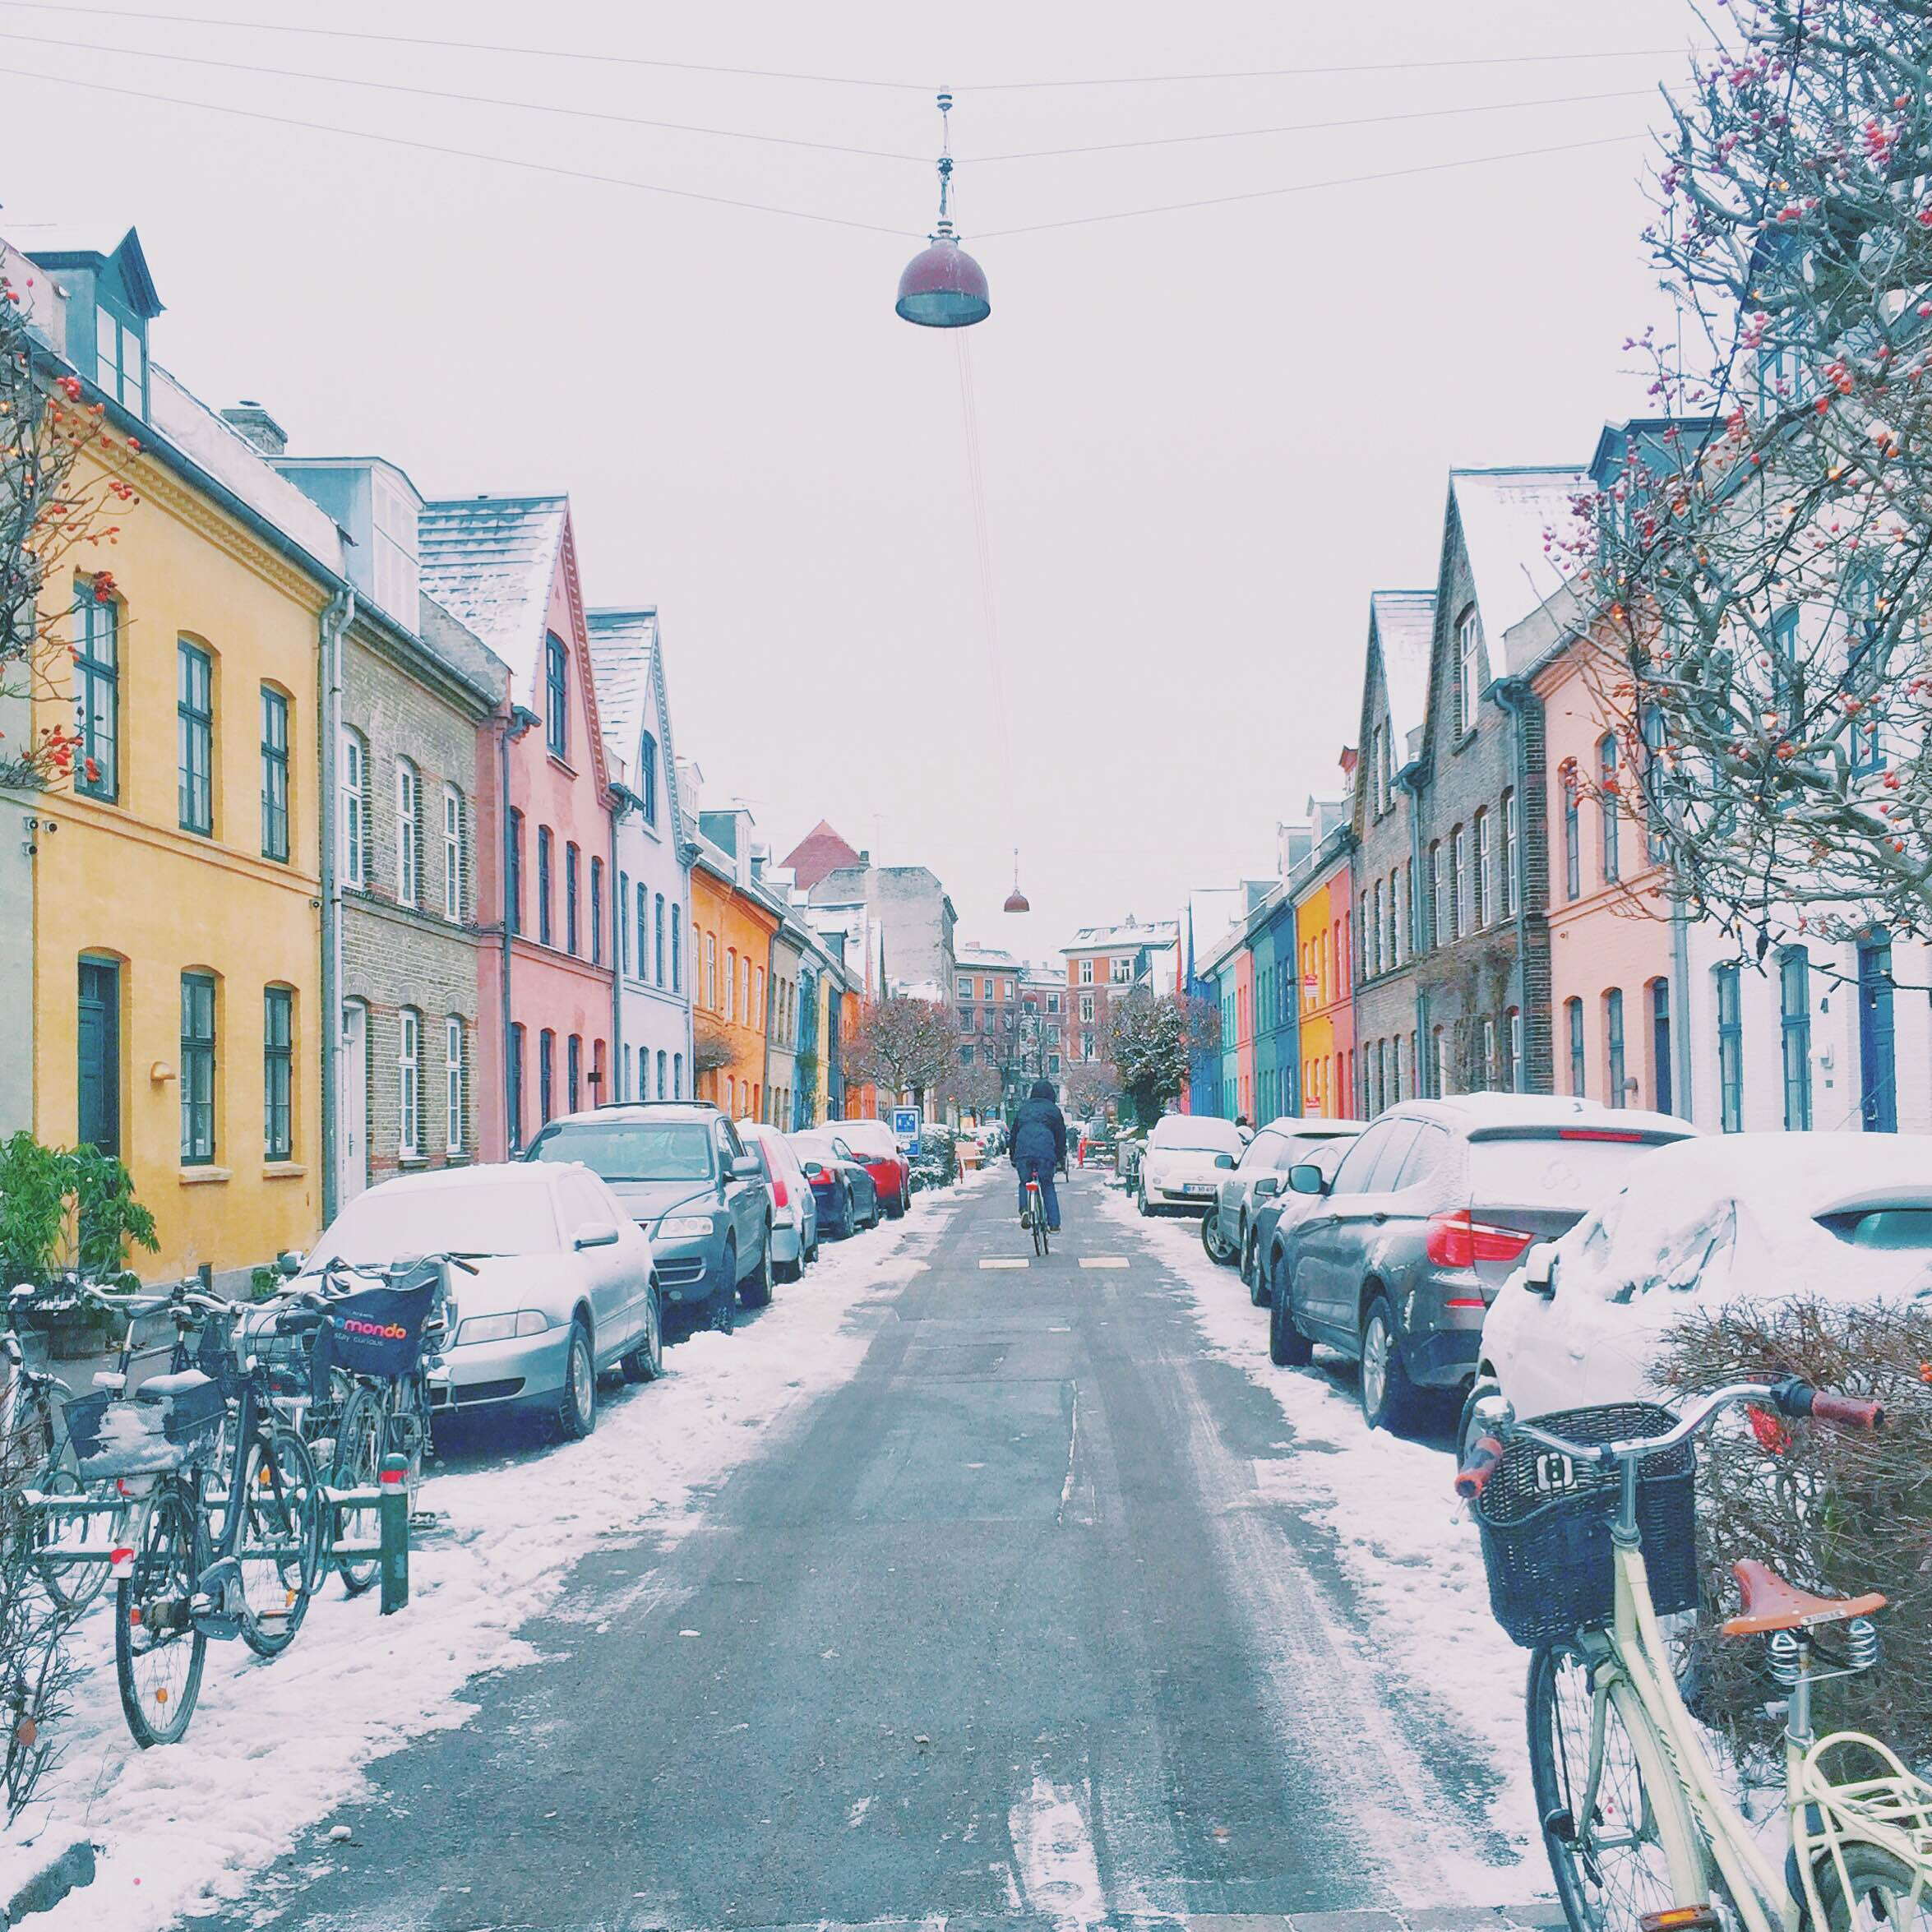 Snow and colorful houses in Copenhagen